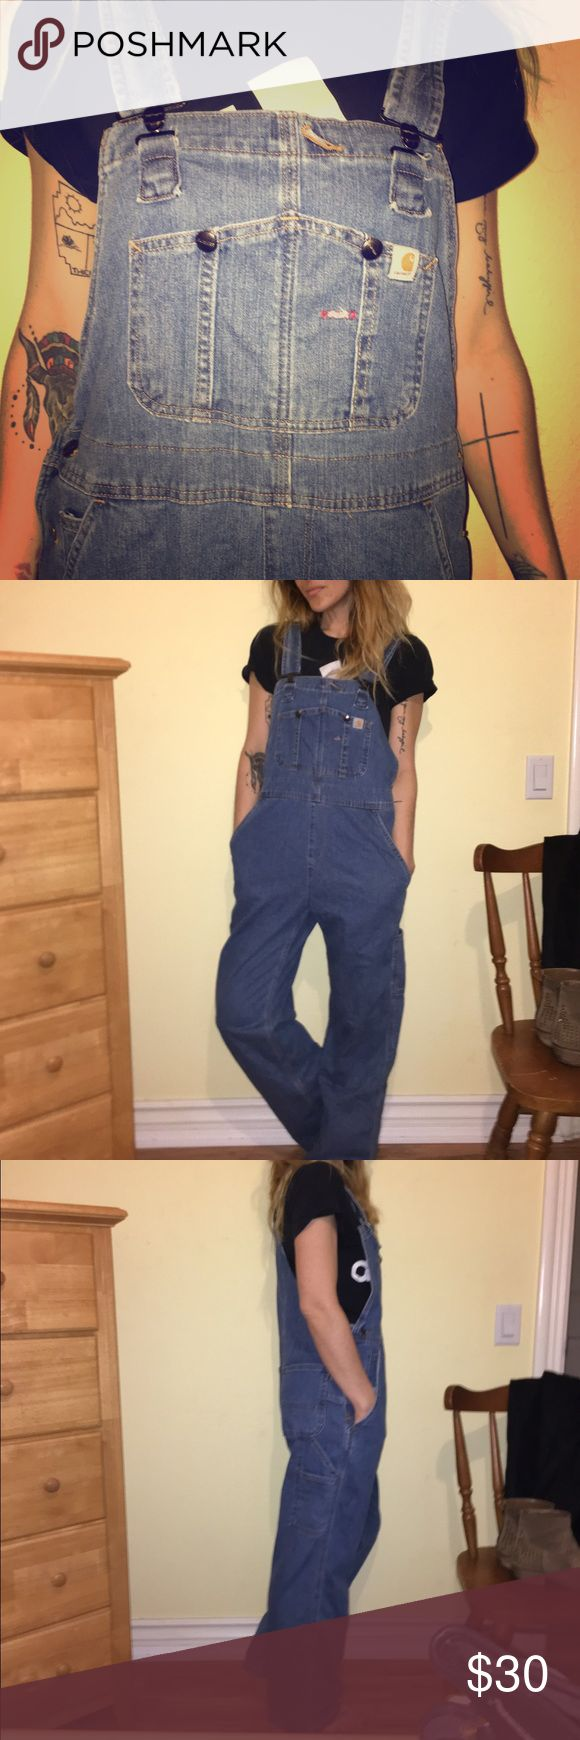 Carhart Jeans For Women